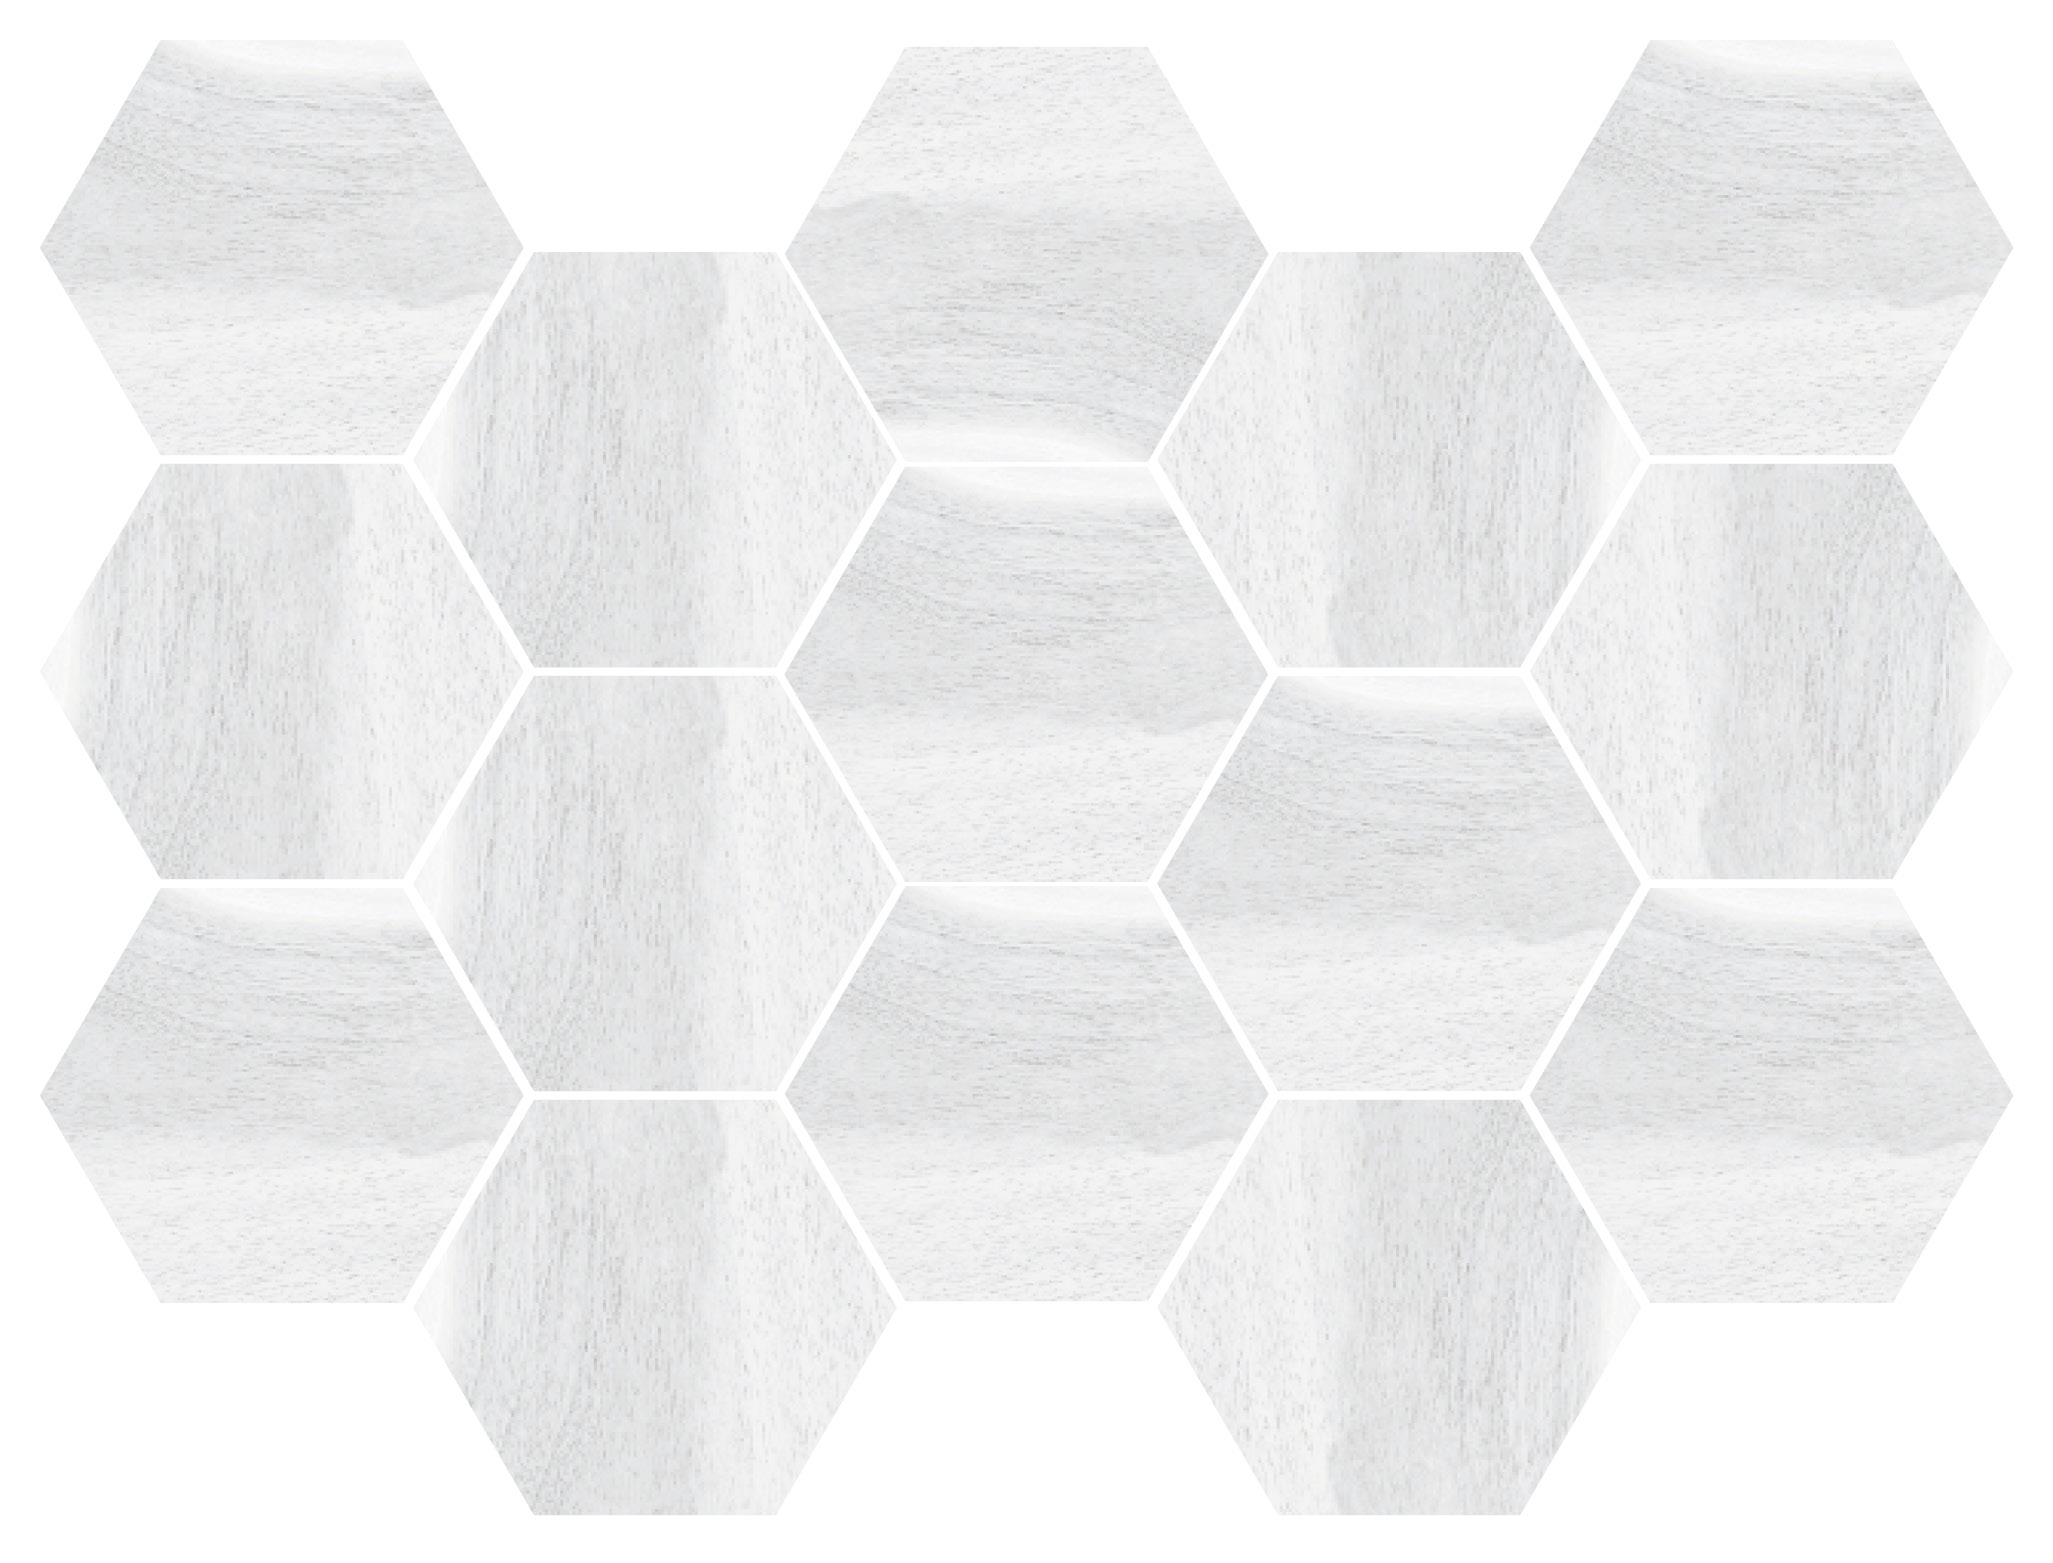 tasmania-frost-10-x-14-hexagon-mosaic-happy-floors-1.jpg